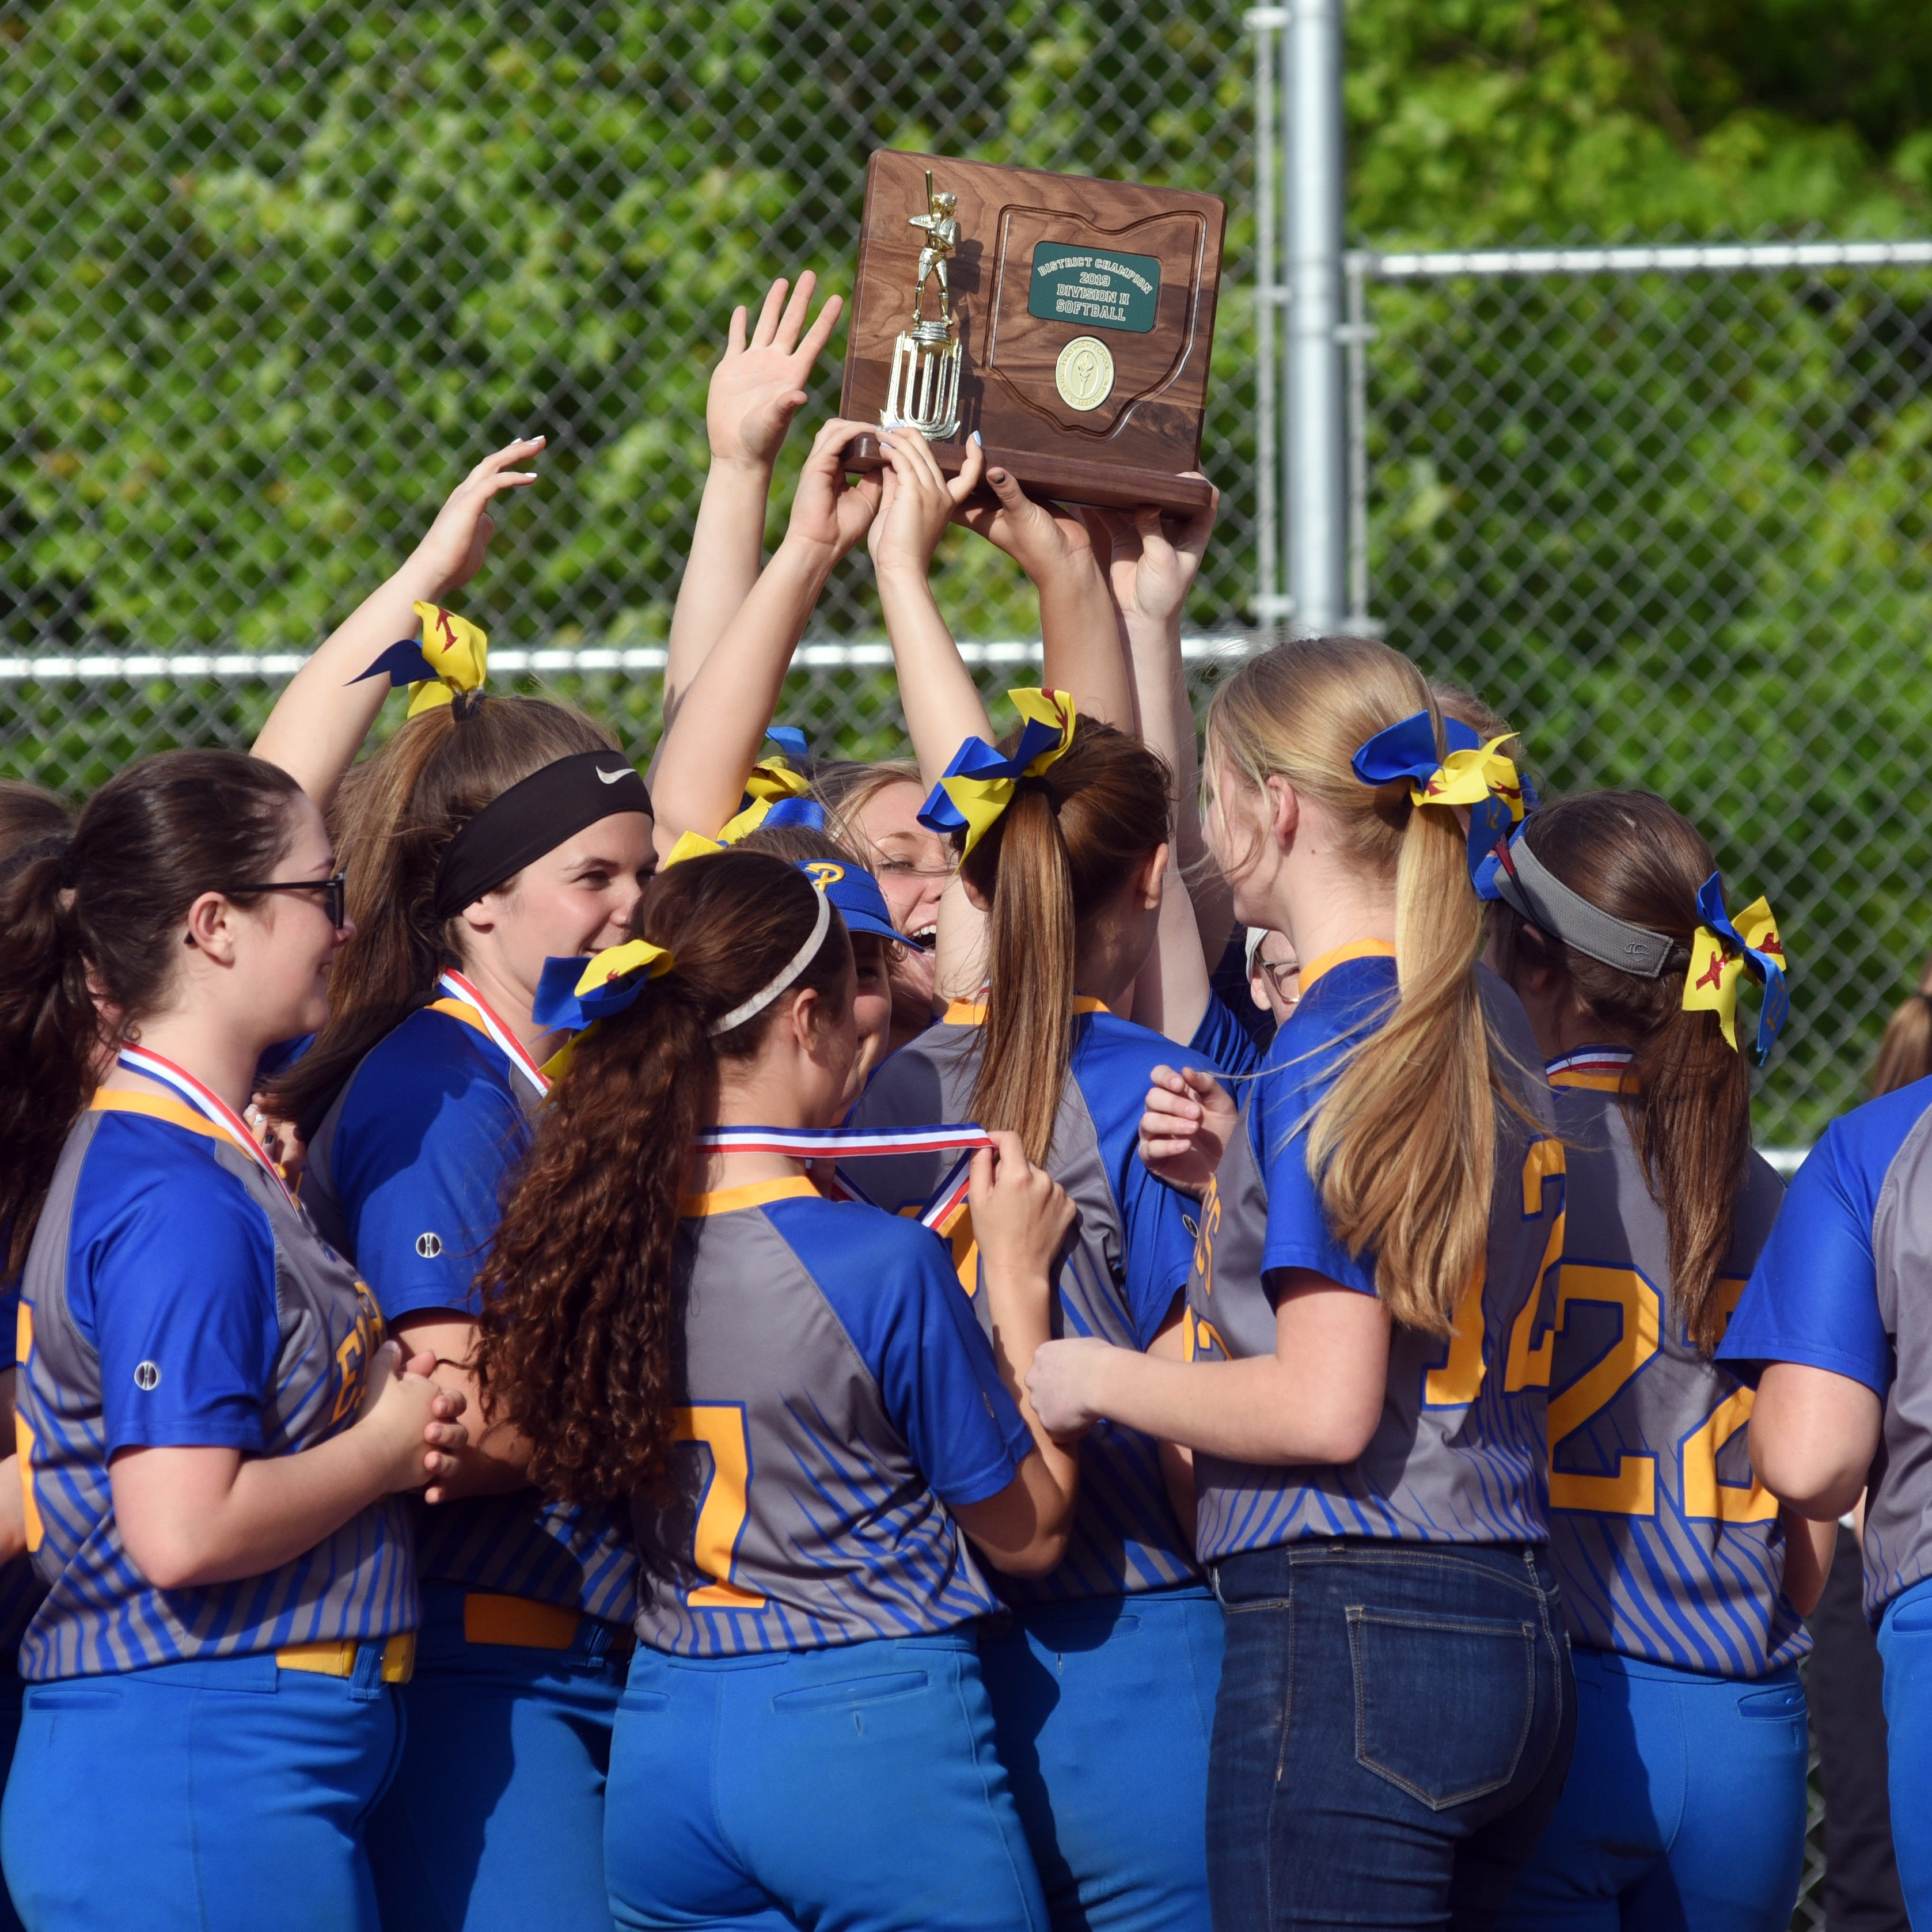 Ticket punched: Philo softball blasts Big Red for district title